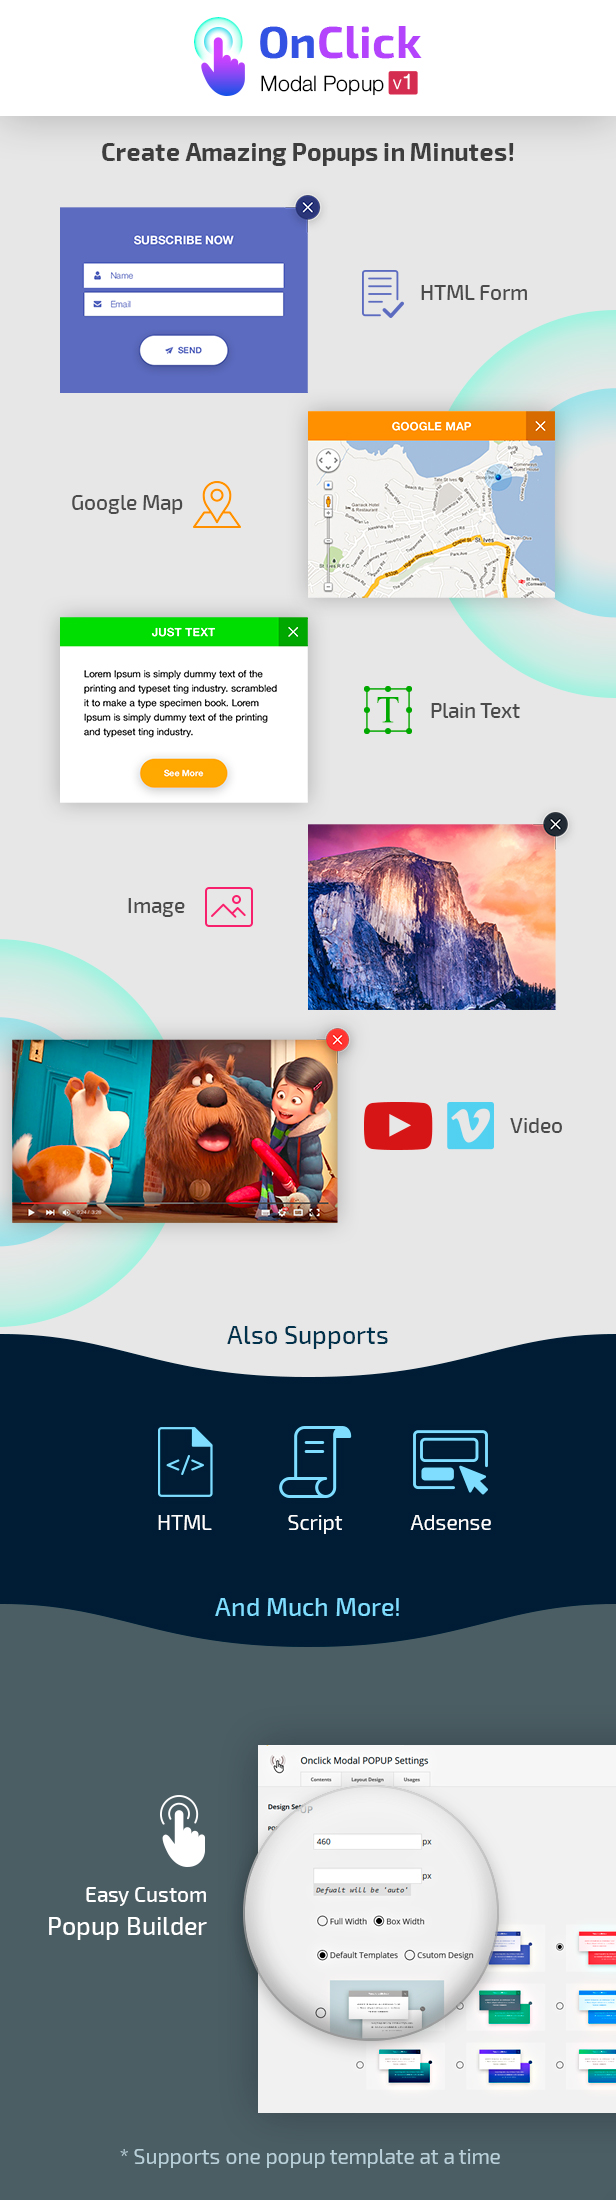 OnClick Modal POPUP - 1